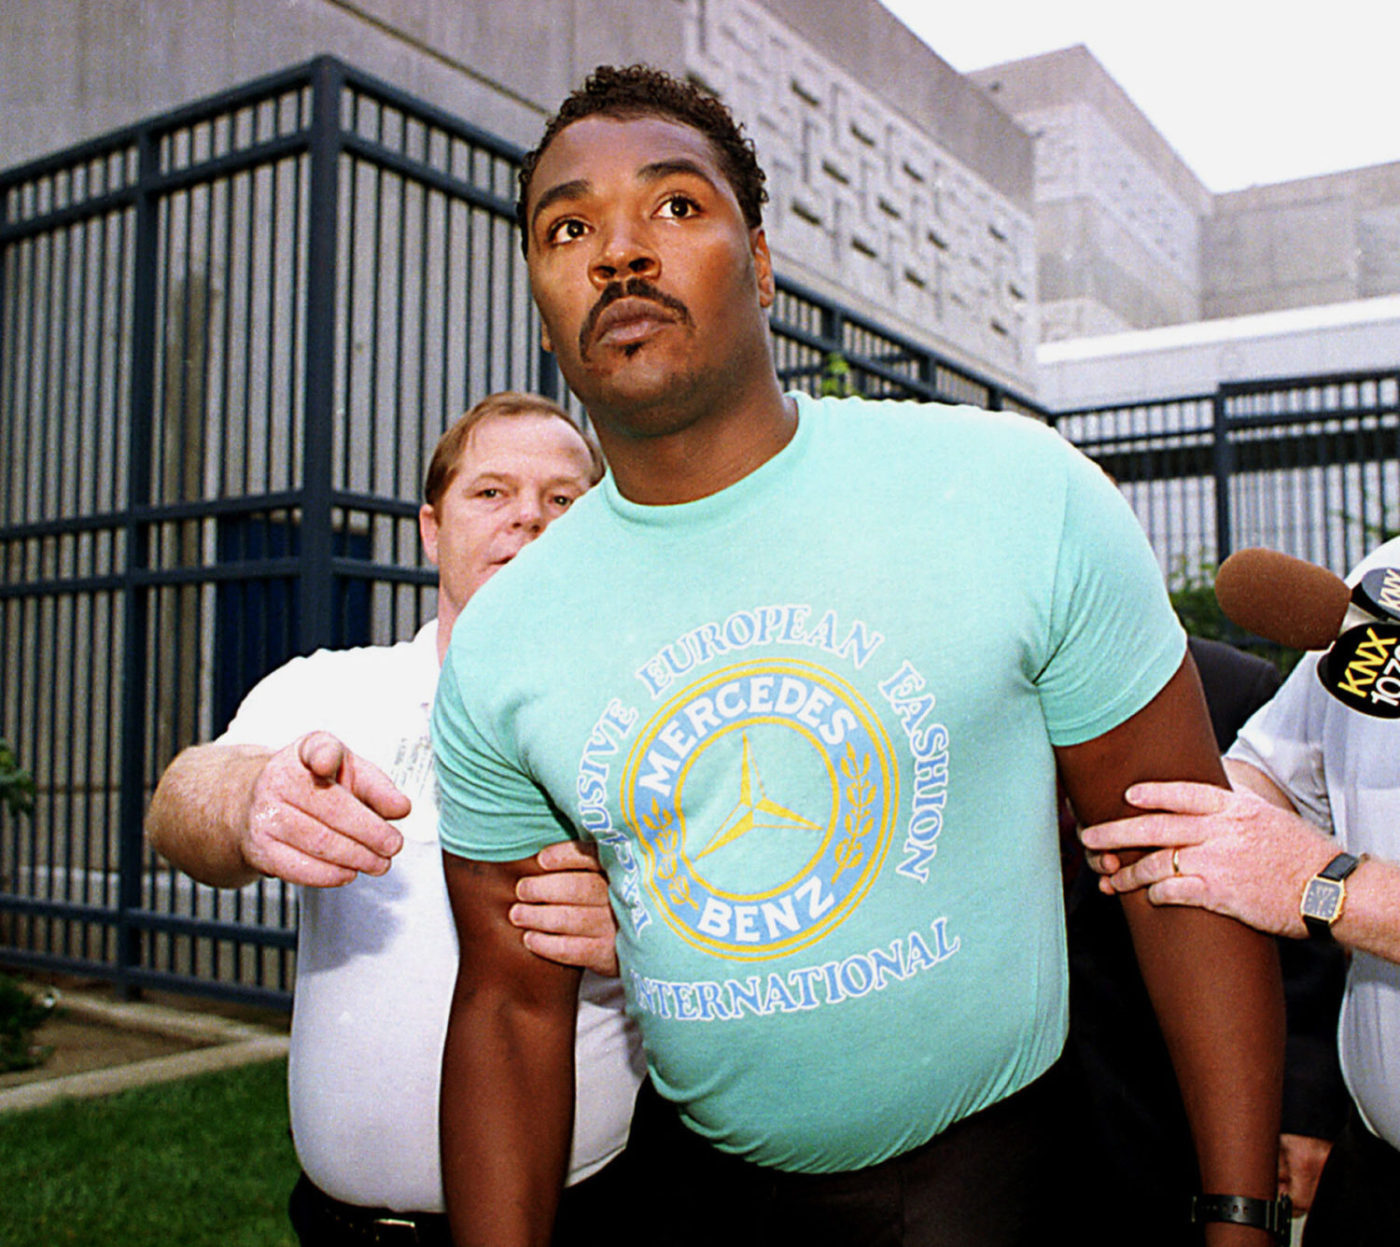 Rodney-King-in-1991-by-Kevork-Djansezian-AP-1400x1247, John Burris on the indictment of two Stockton cops for viciously beating Devin Carter, 17, Local News & Views